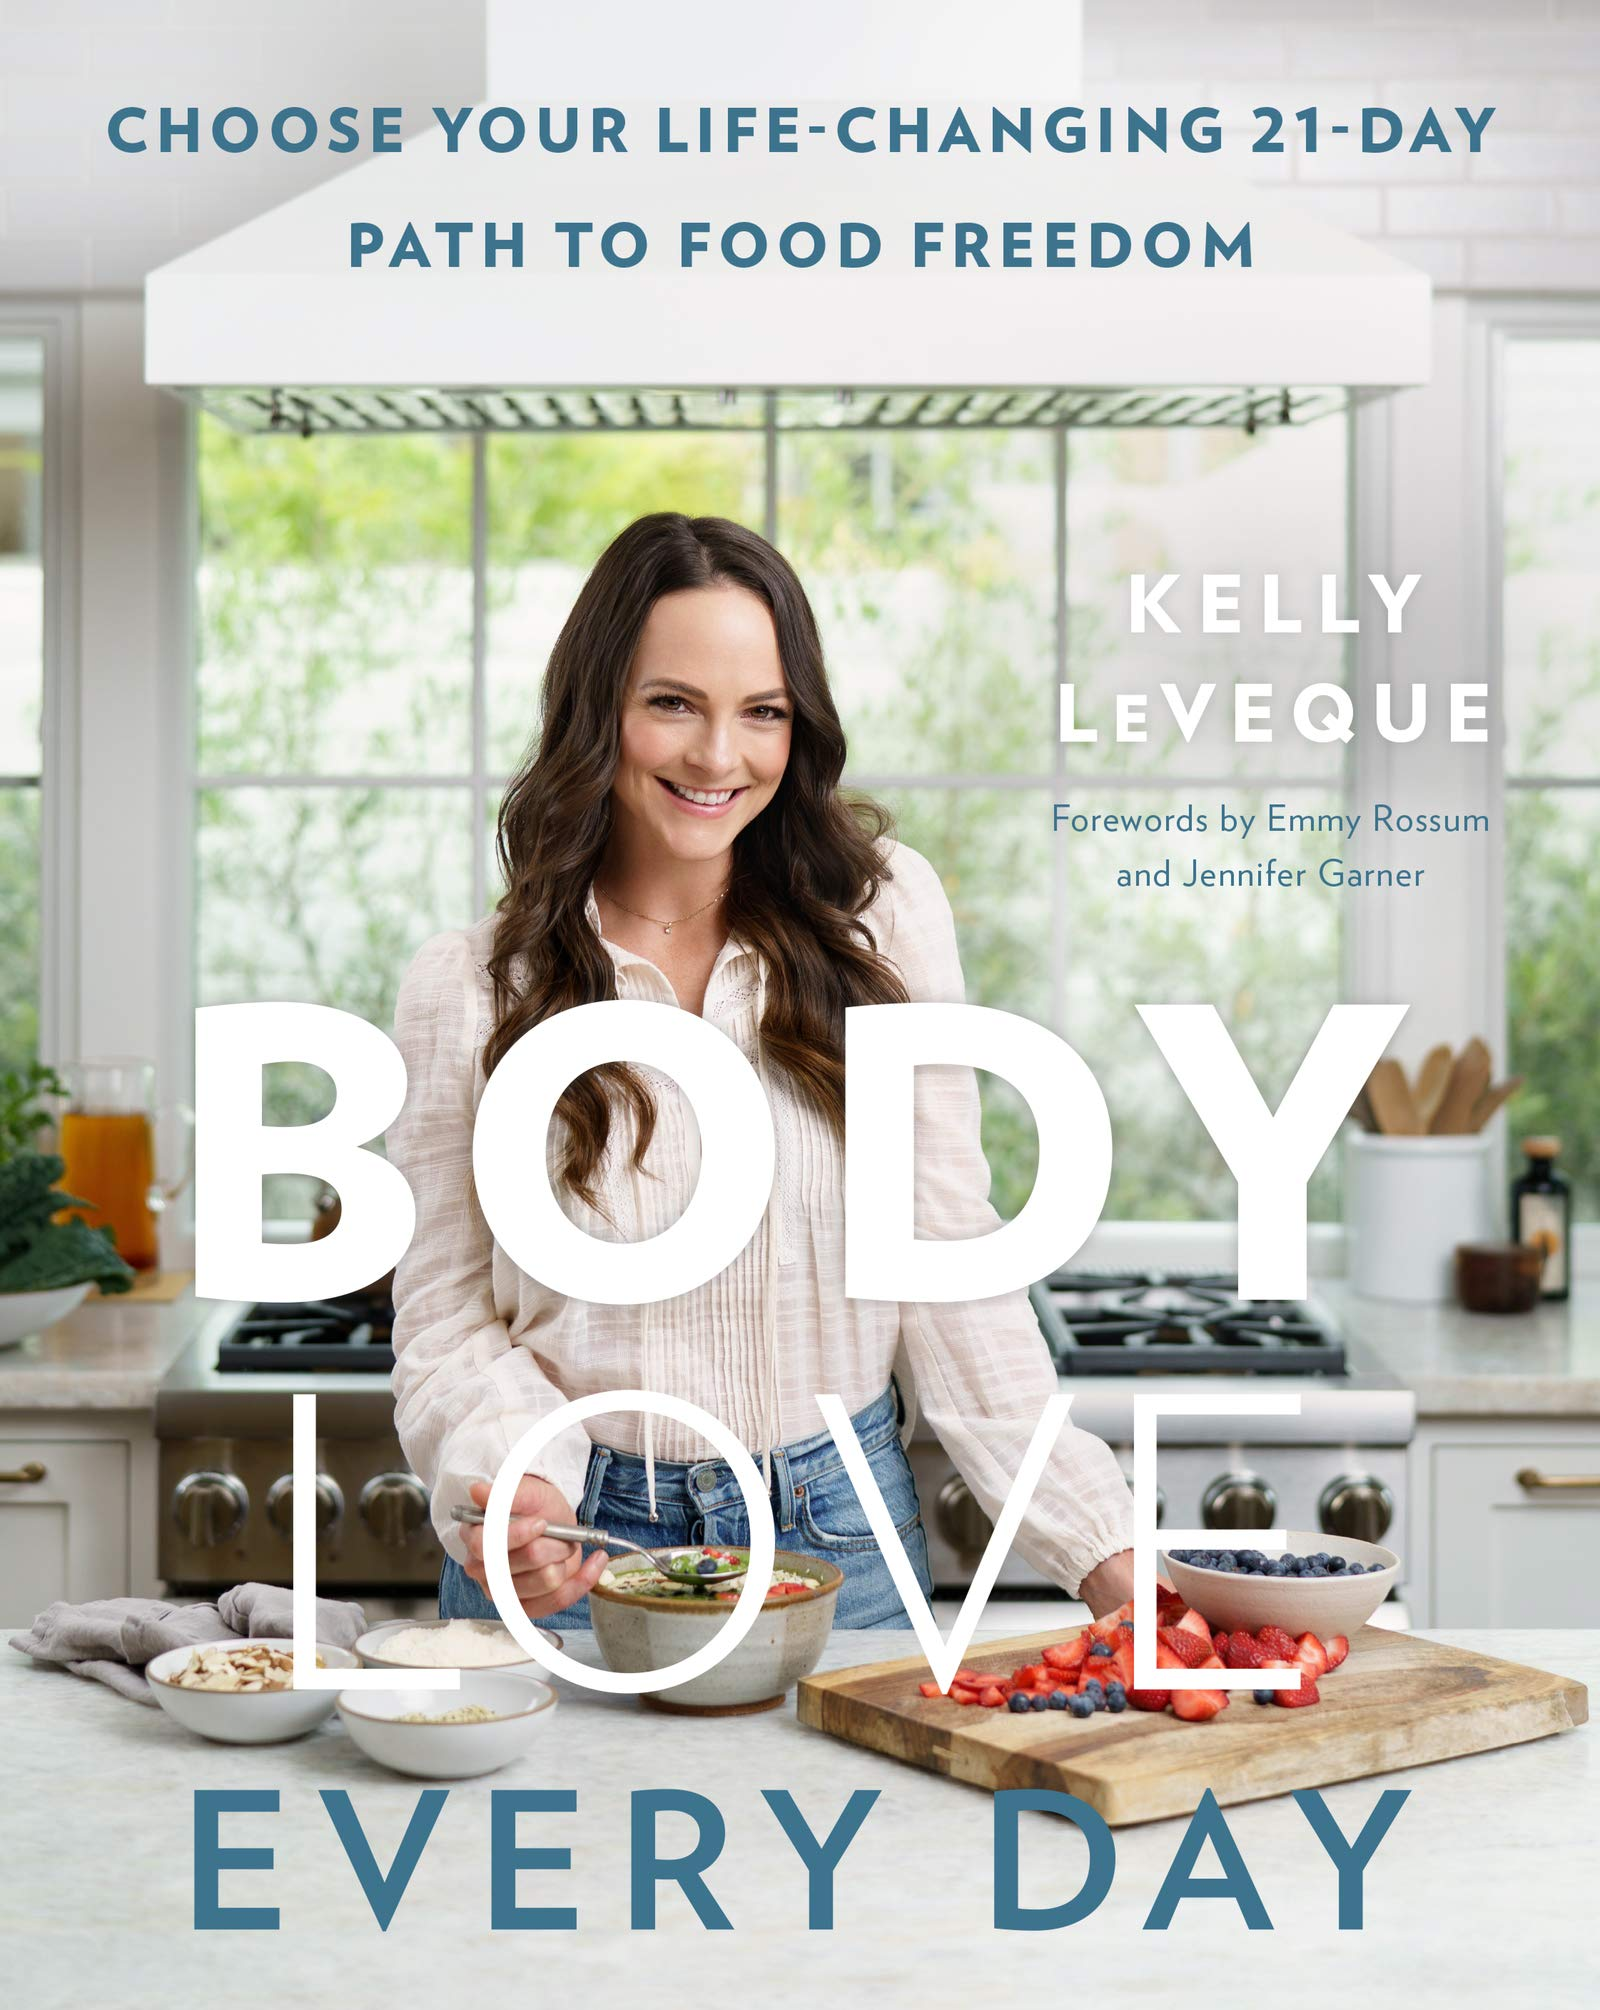 Body Love Every Day Book